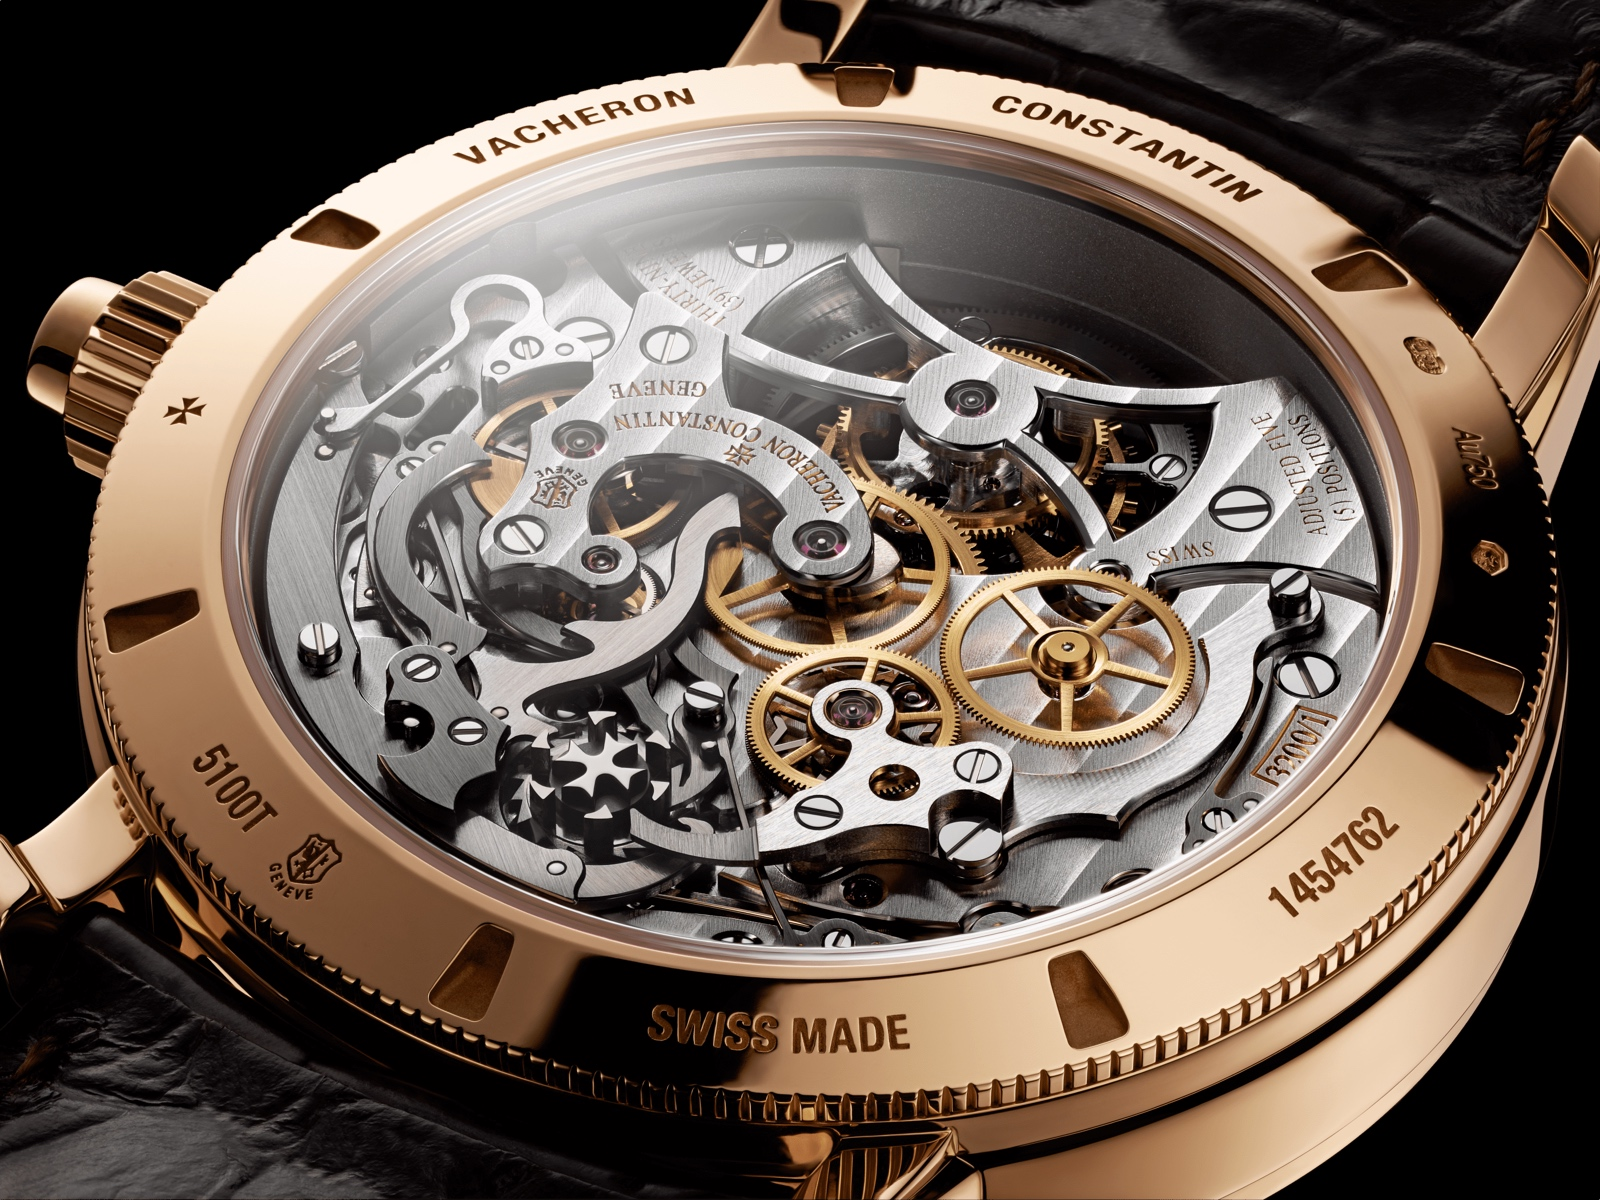 Vacheron Constantin Traditionnelle Tourbillon Chronographe Monopulsante - back